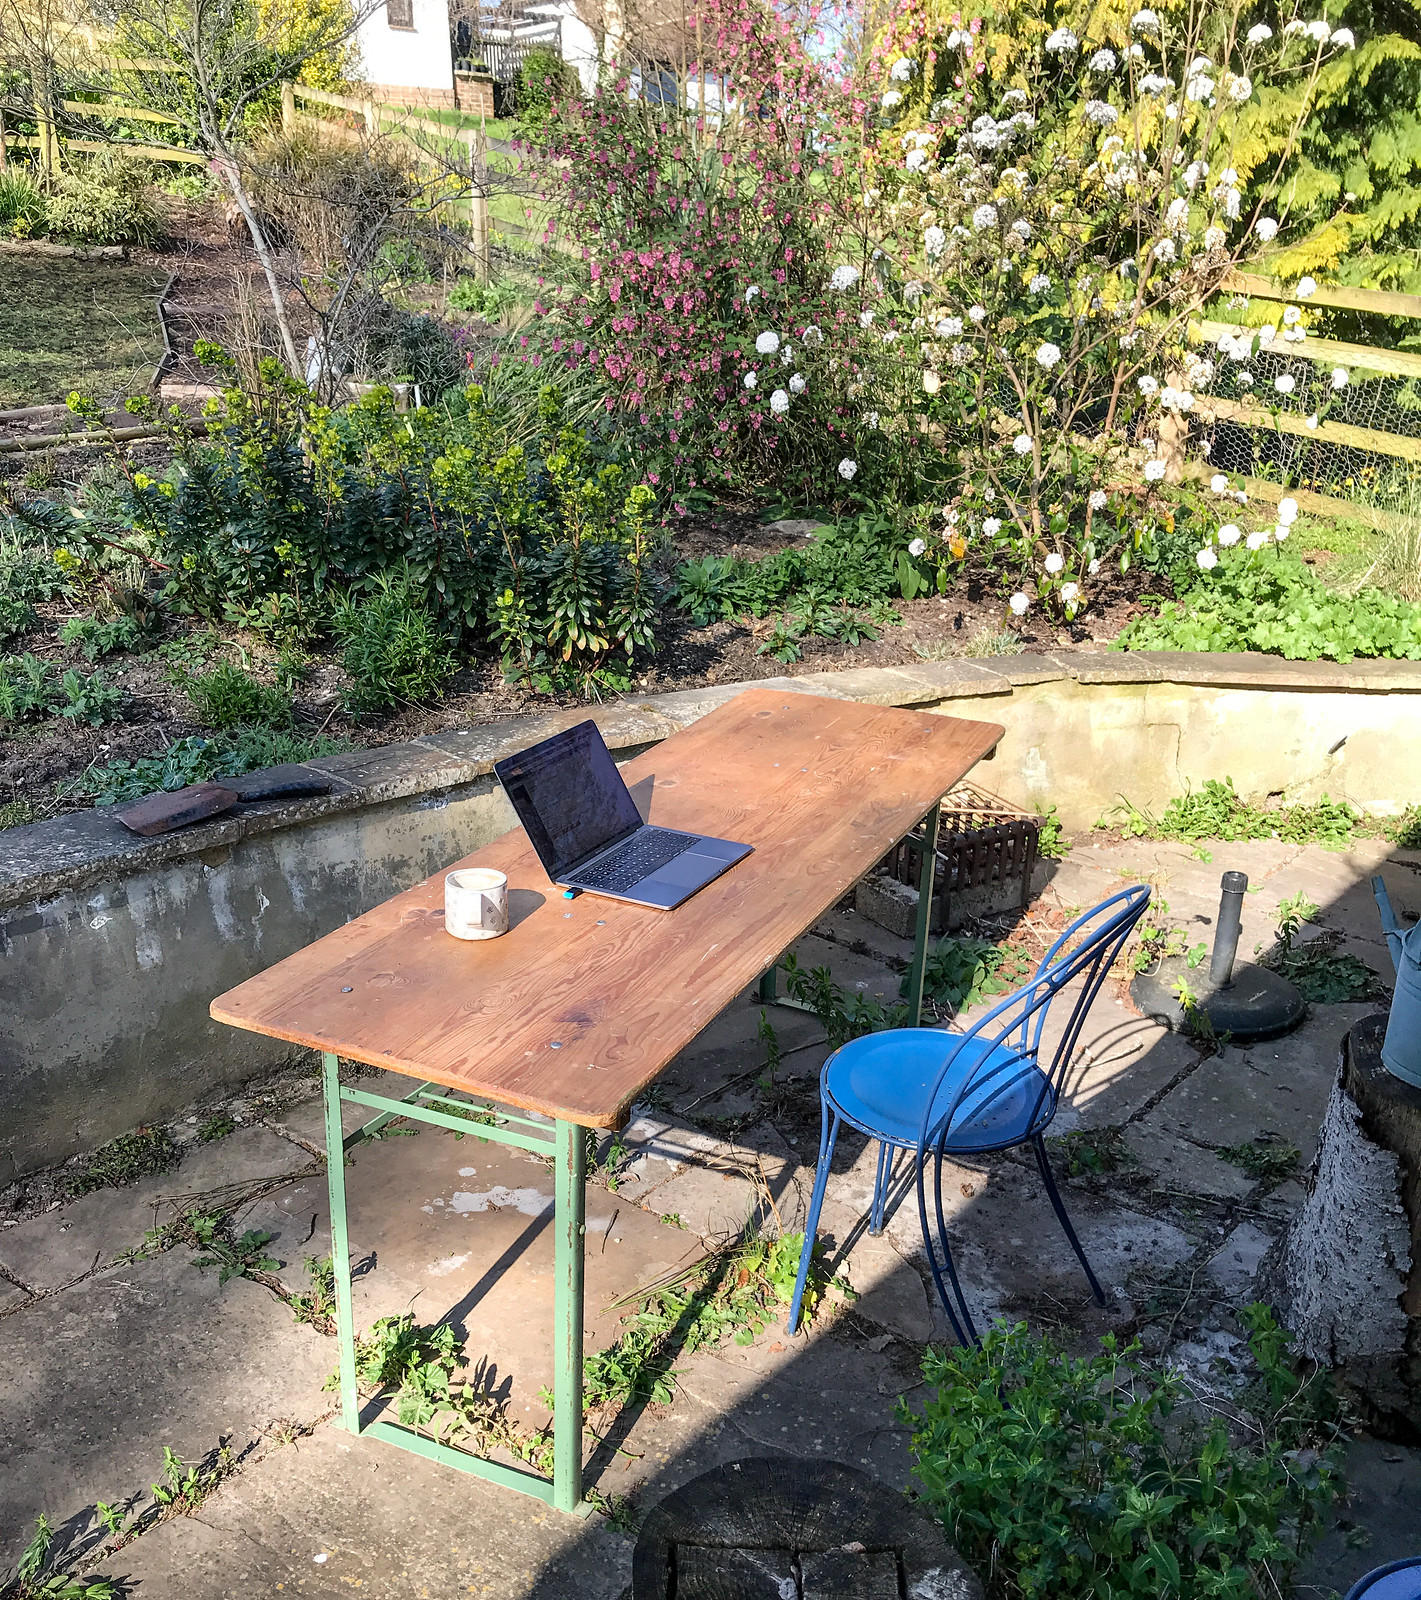 Working from garden